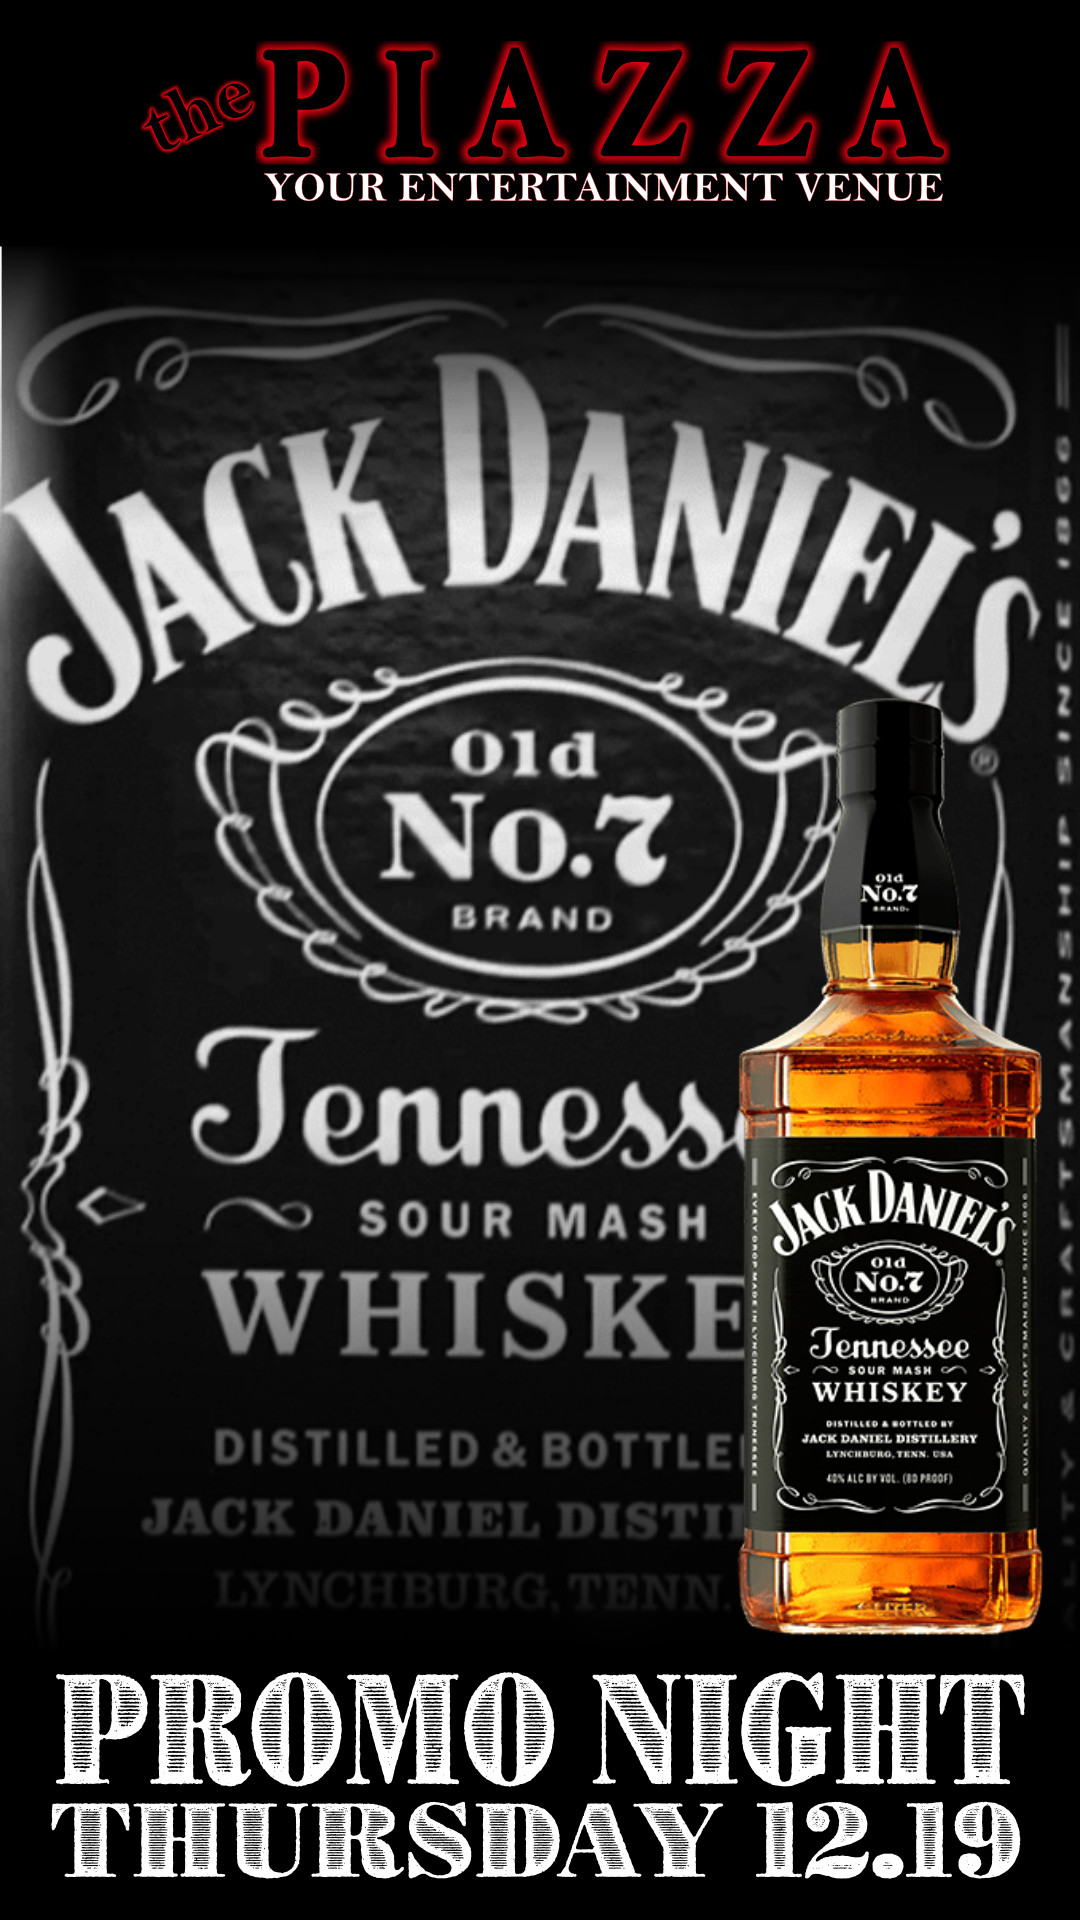 Jack Daniels Promo Night @ the PIAZZA - Aurora